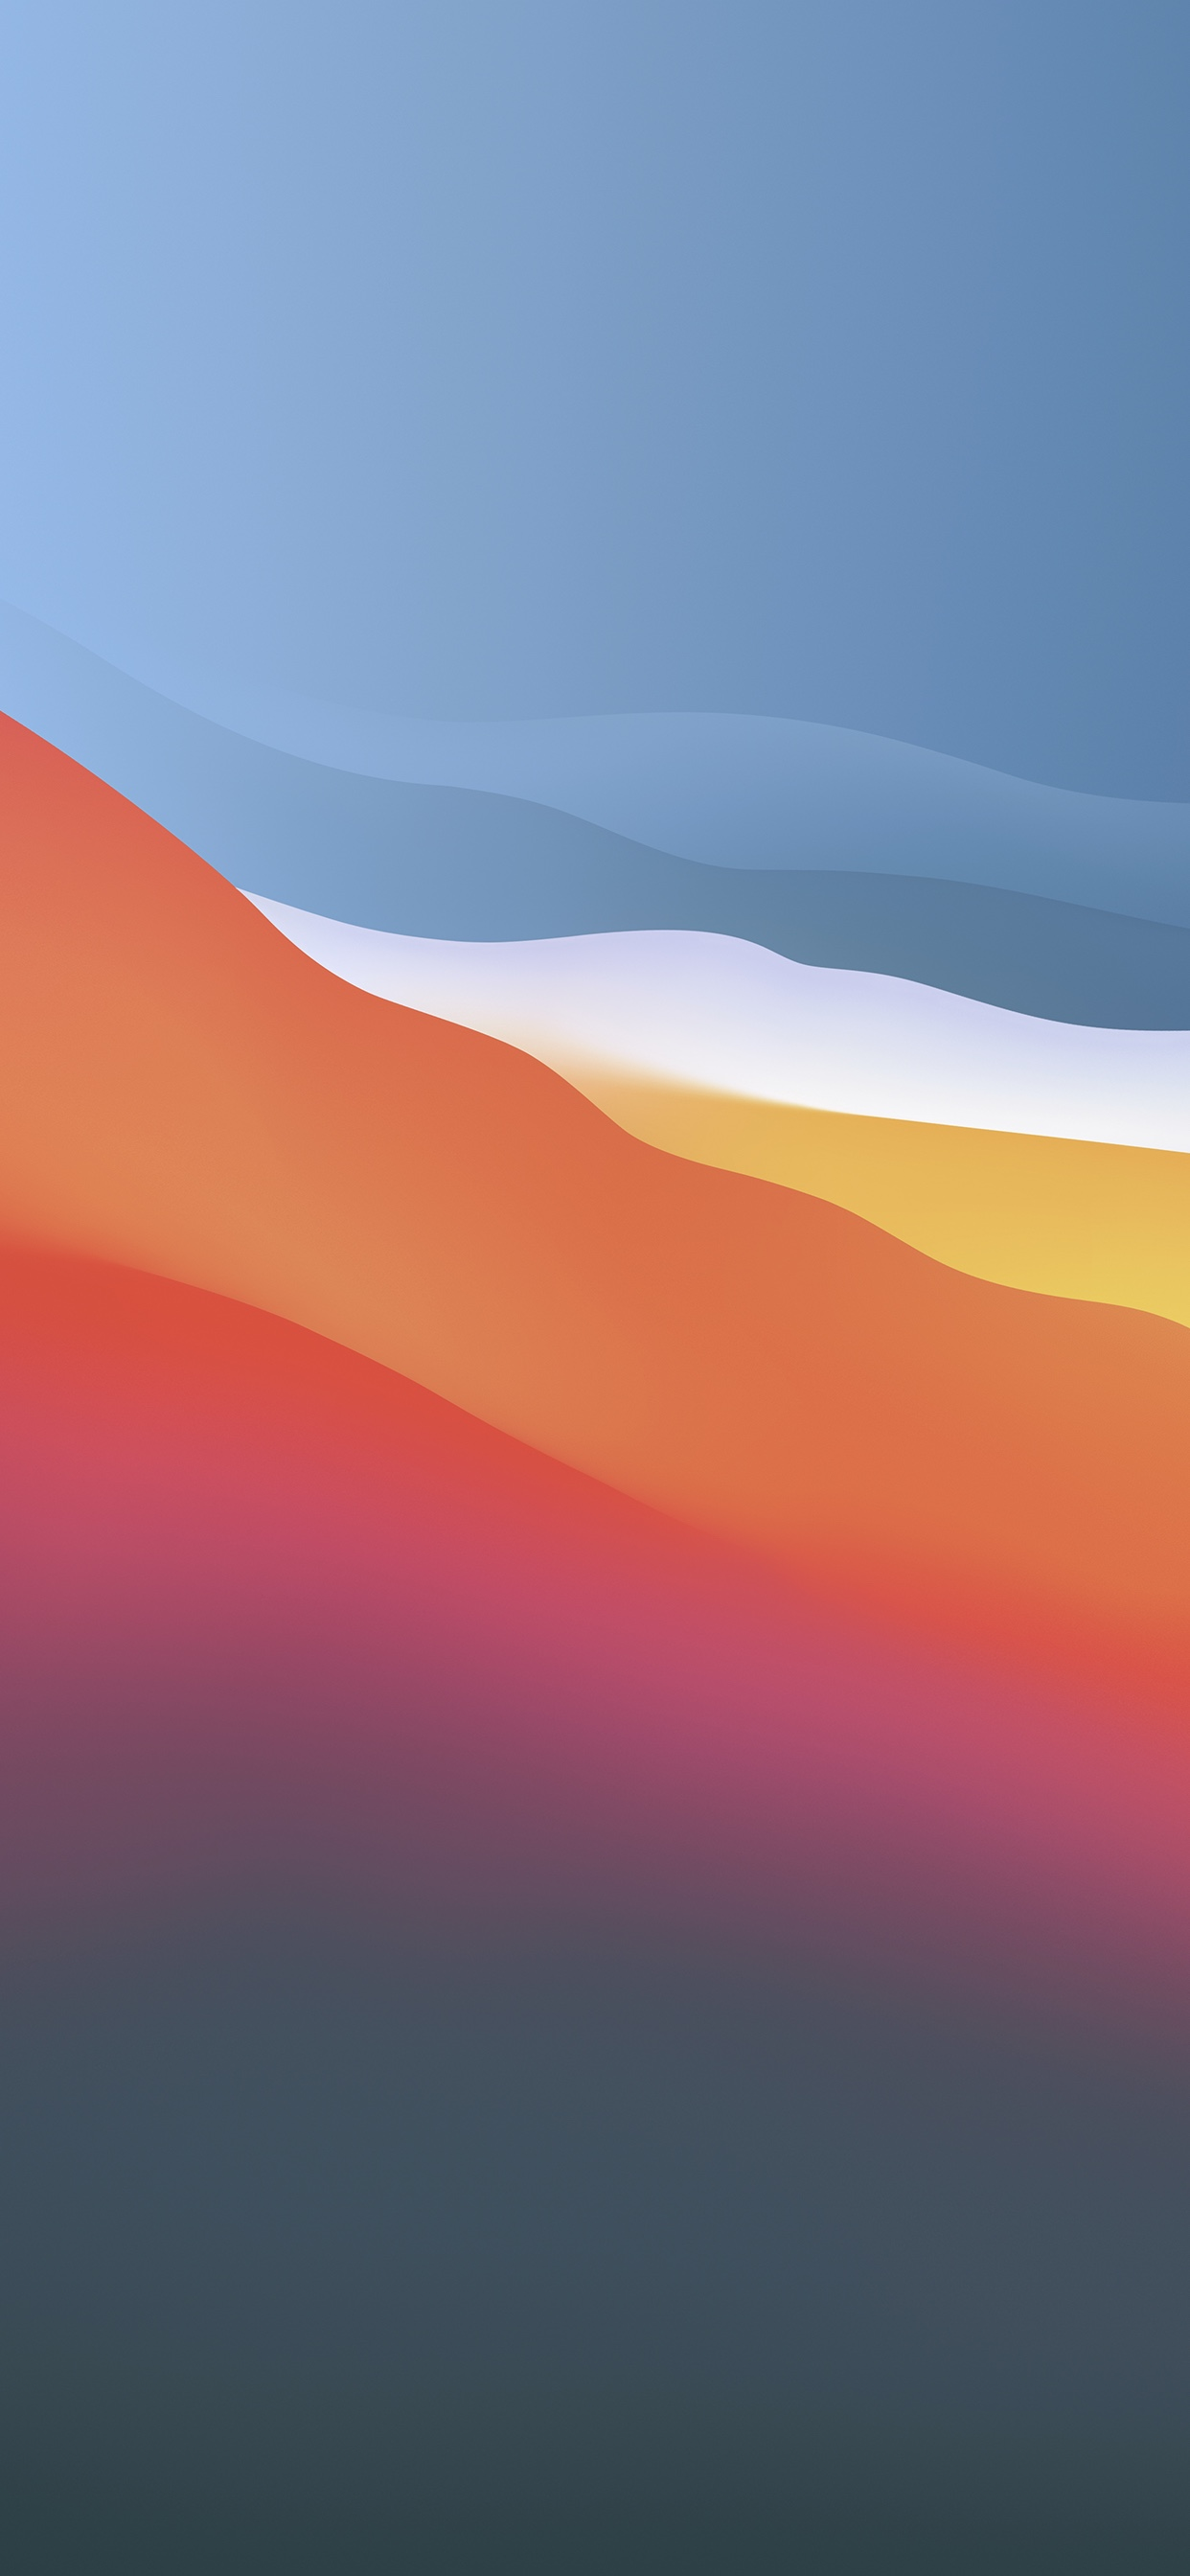 Download these modified iOS 14 and Big Sur wallpapers 1242x2688